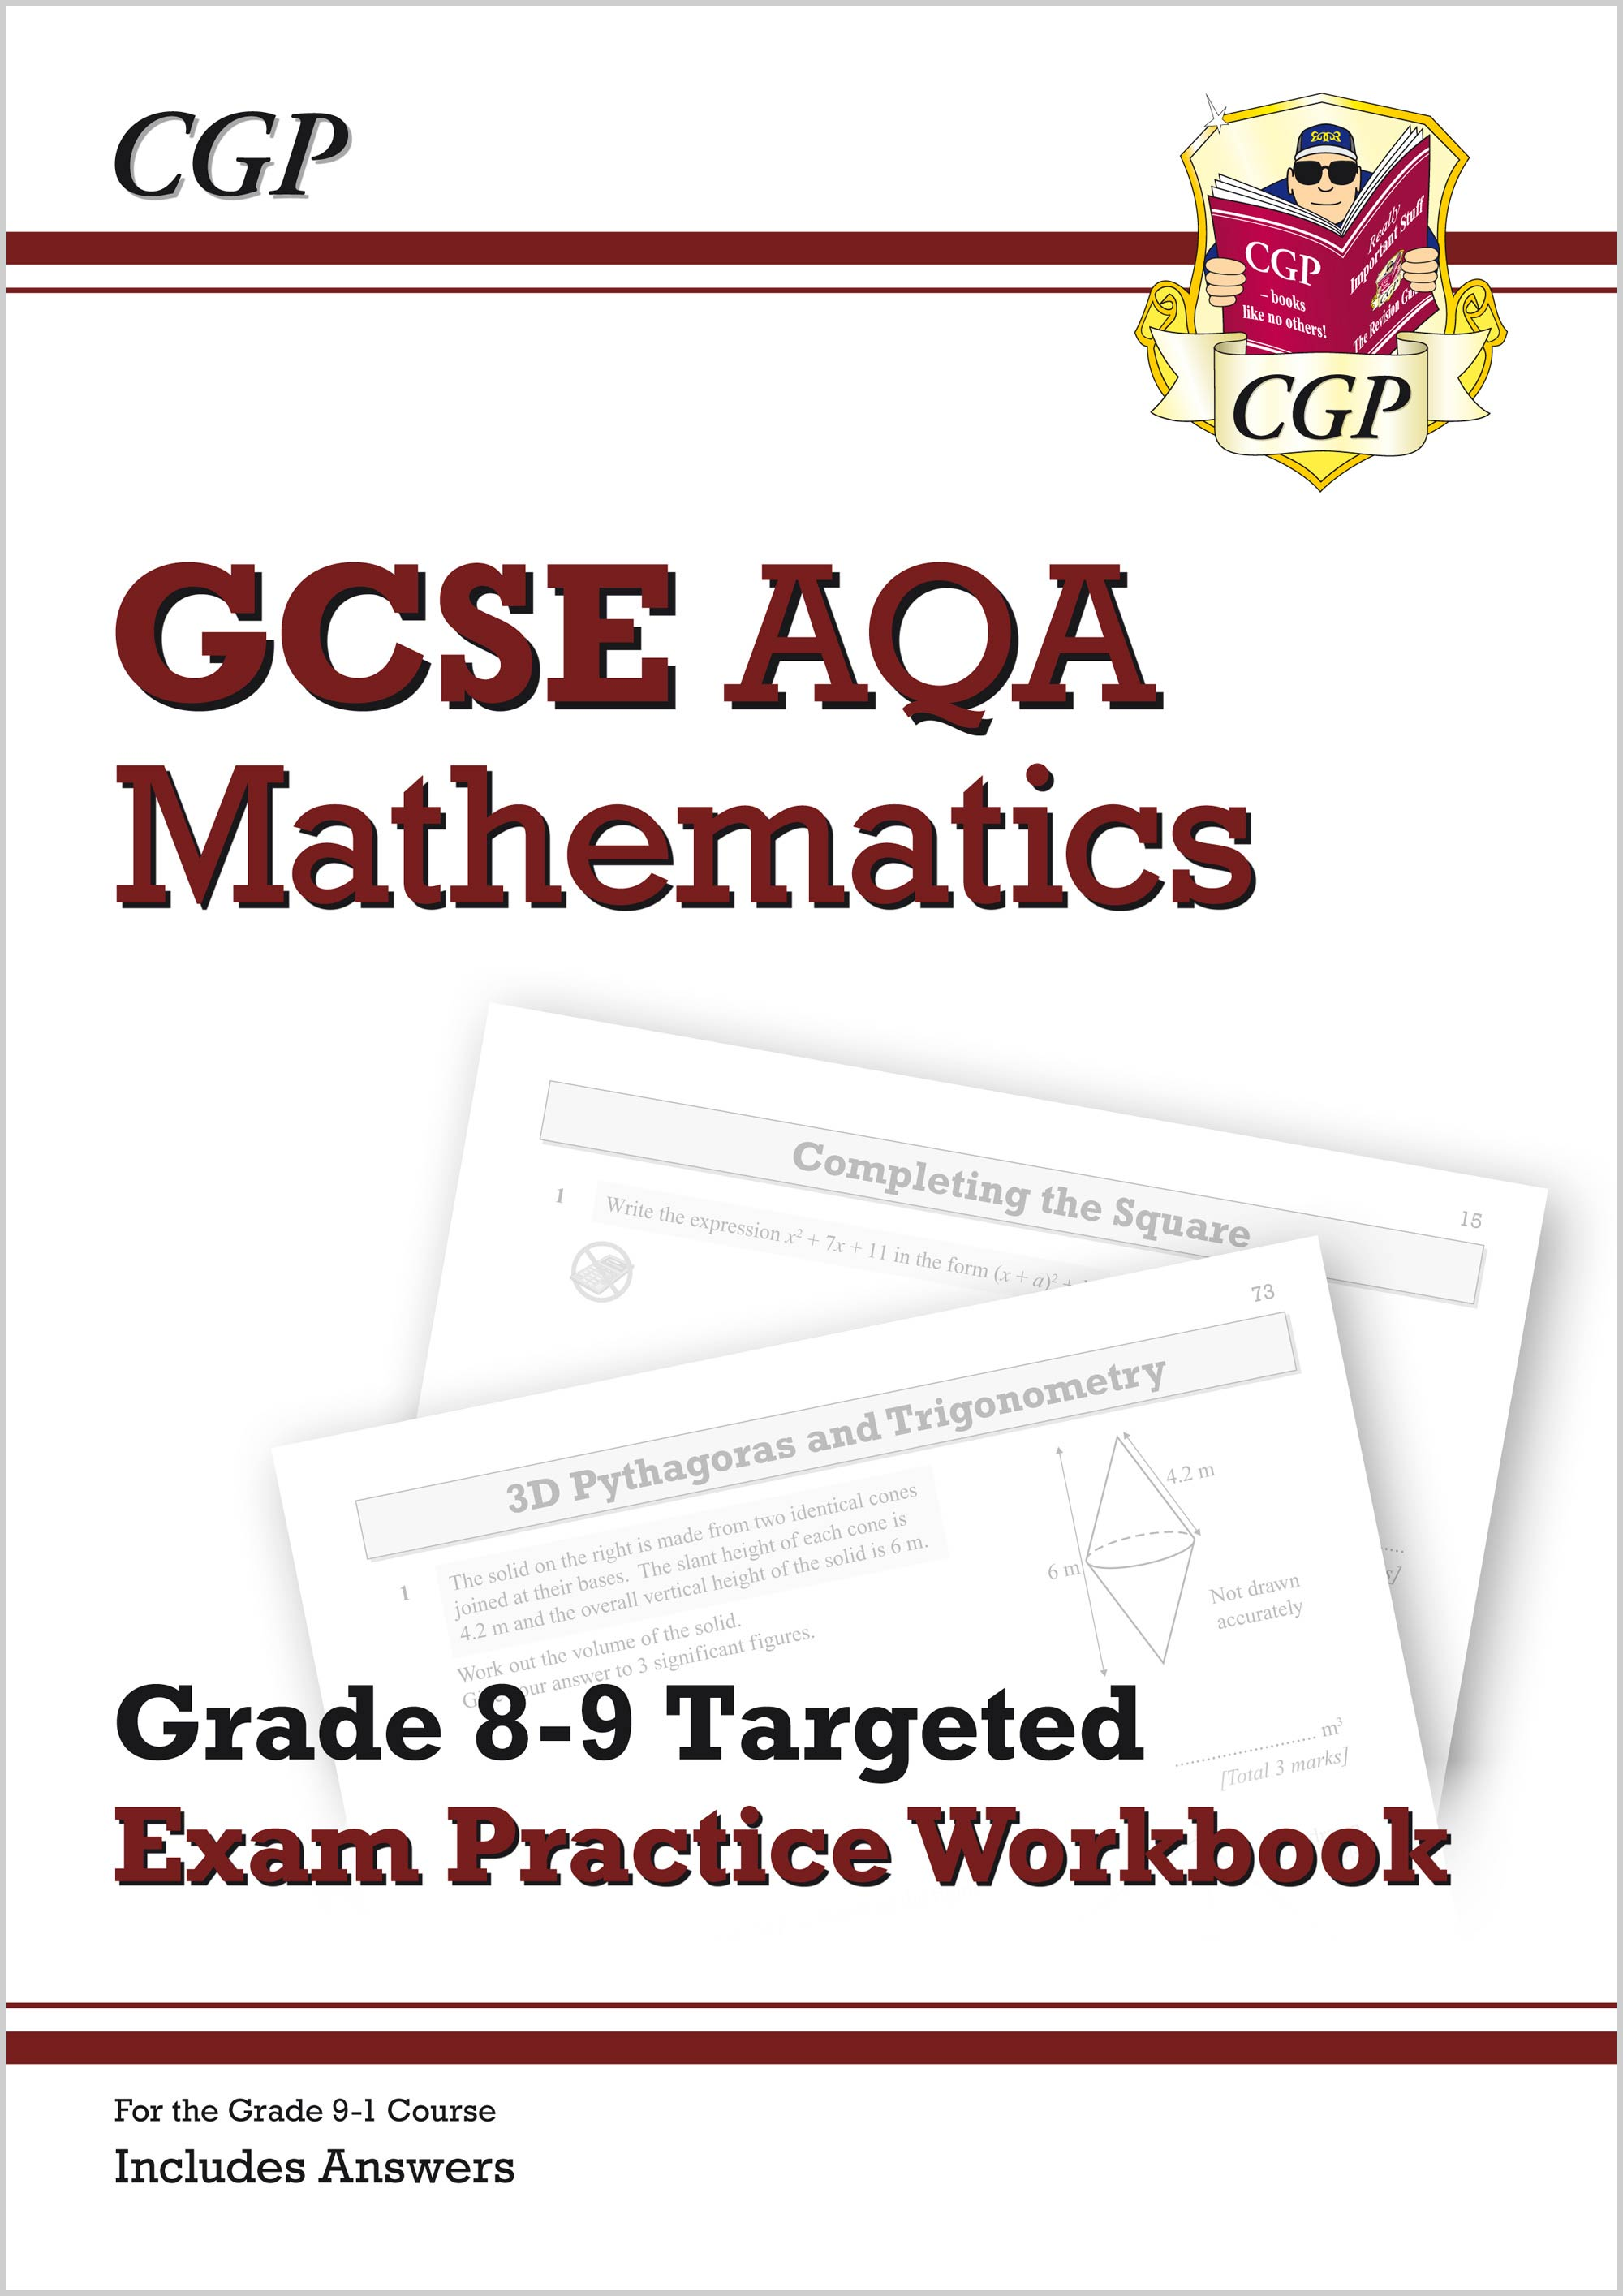 MQ9Q42 - New GCSE Maths AQA Grade 8-9 Targeted Exam Practice Workbook (includes Answers)